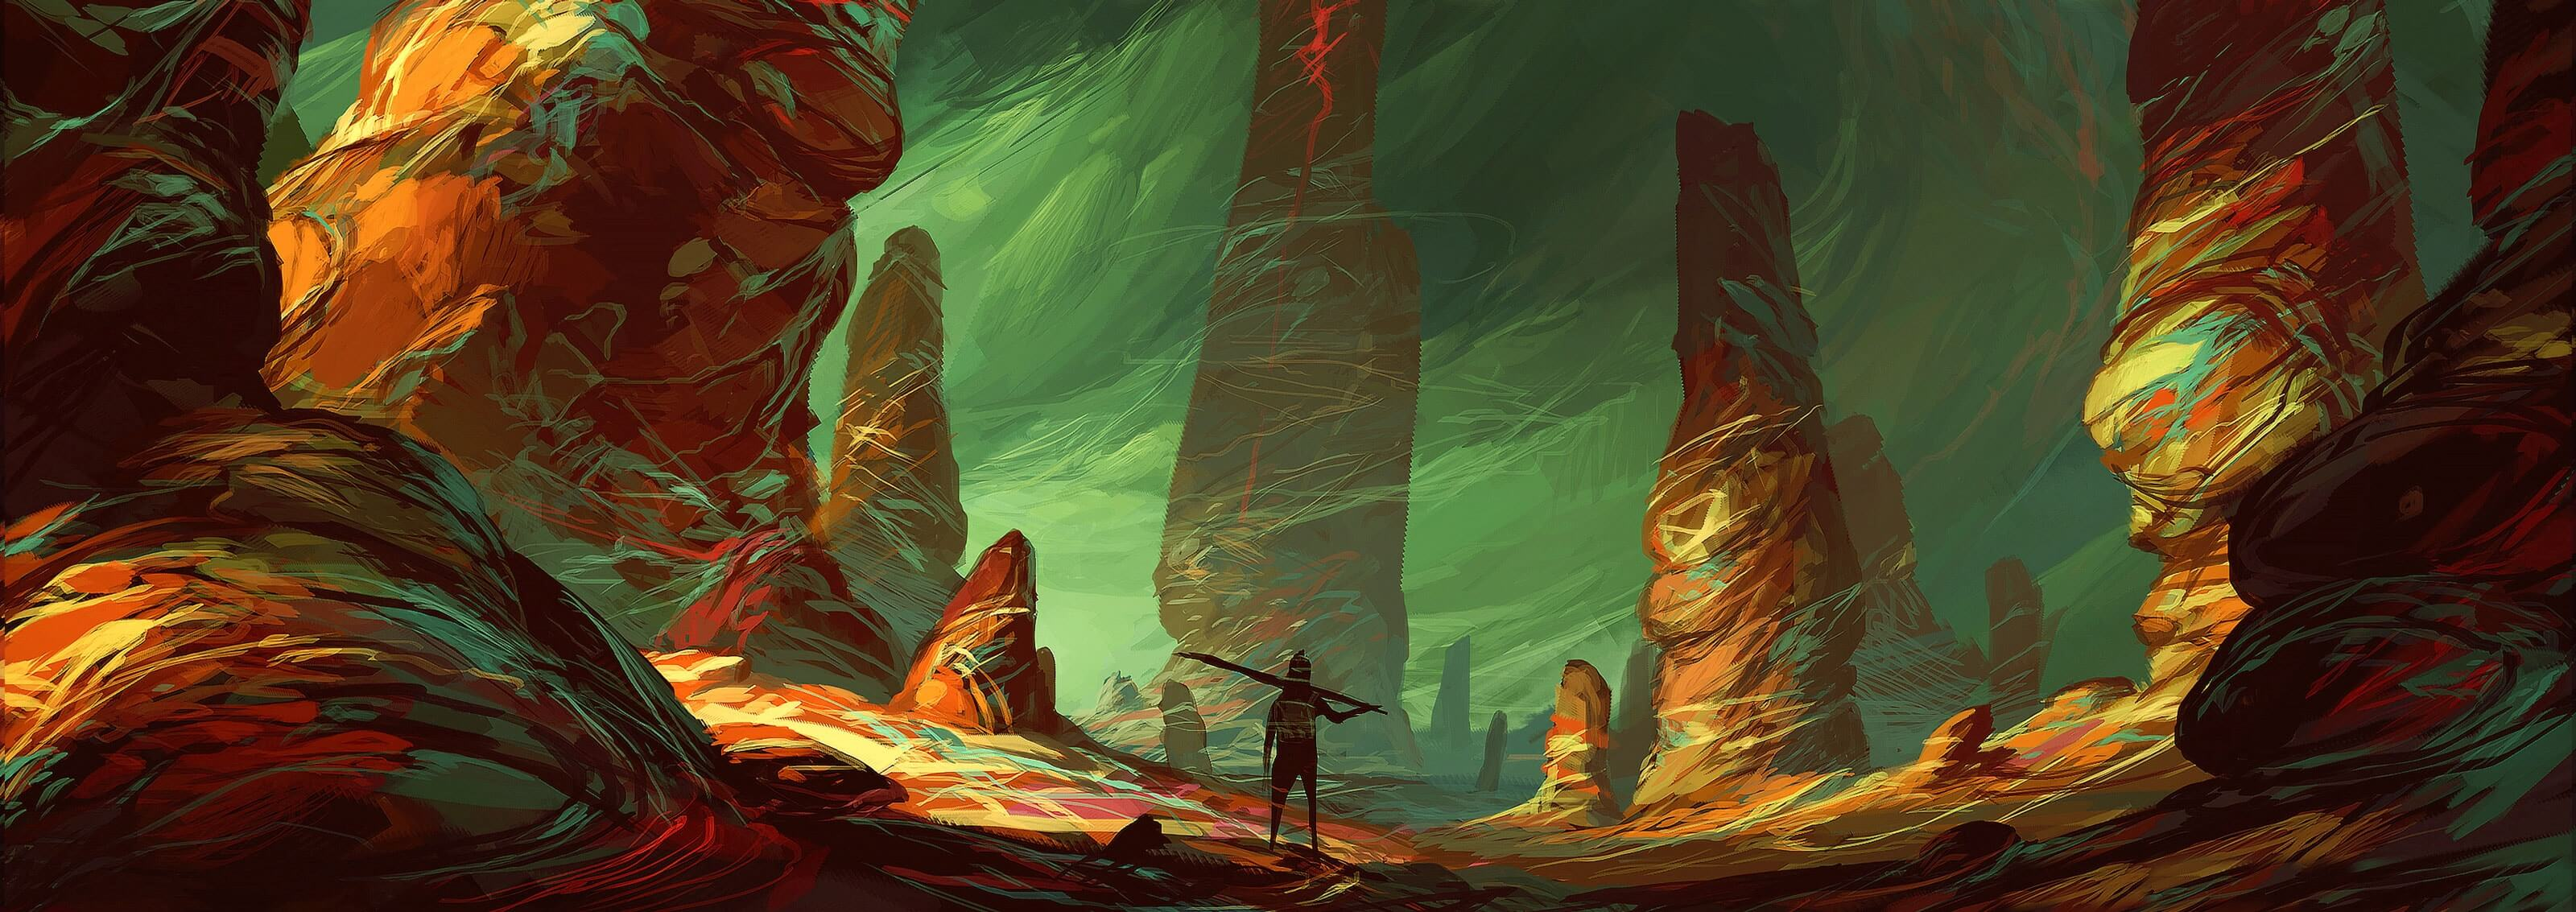 A rocky, alien environment with colorful outcroppings dwarf a humanoid figure standing with its back turned in the foreground